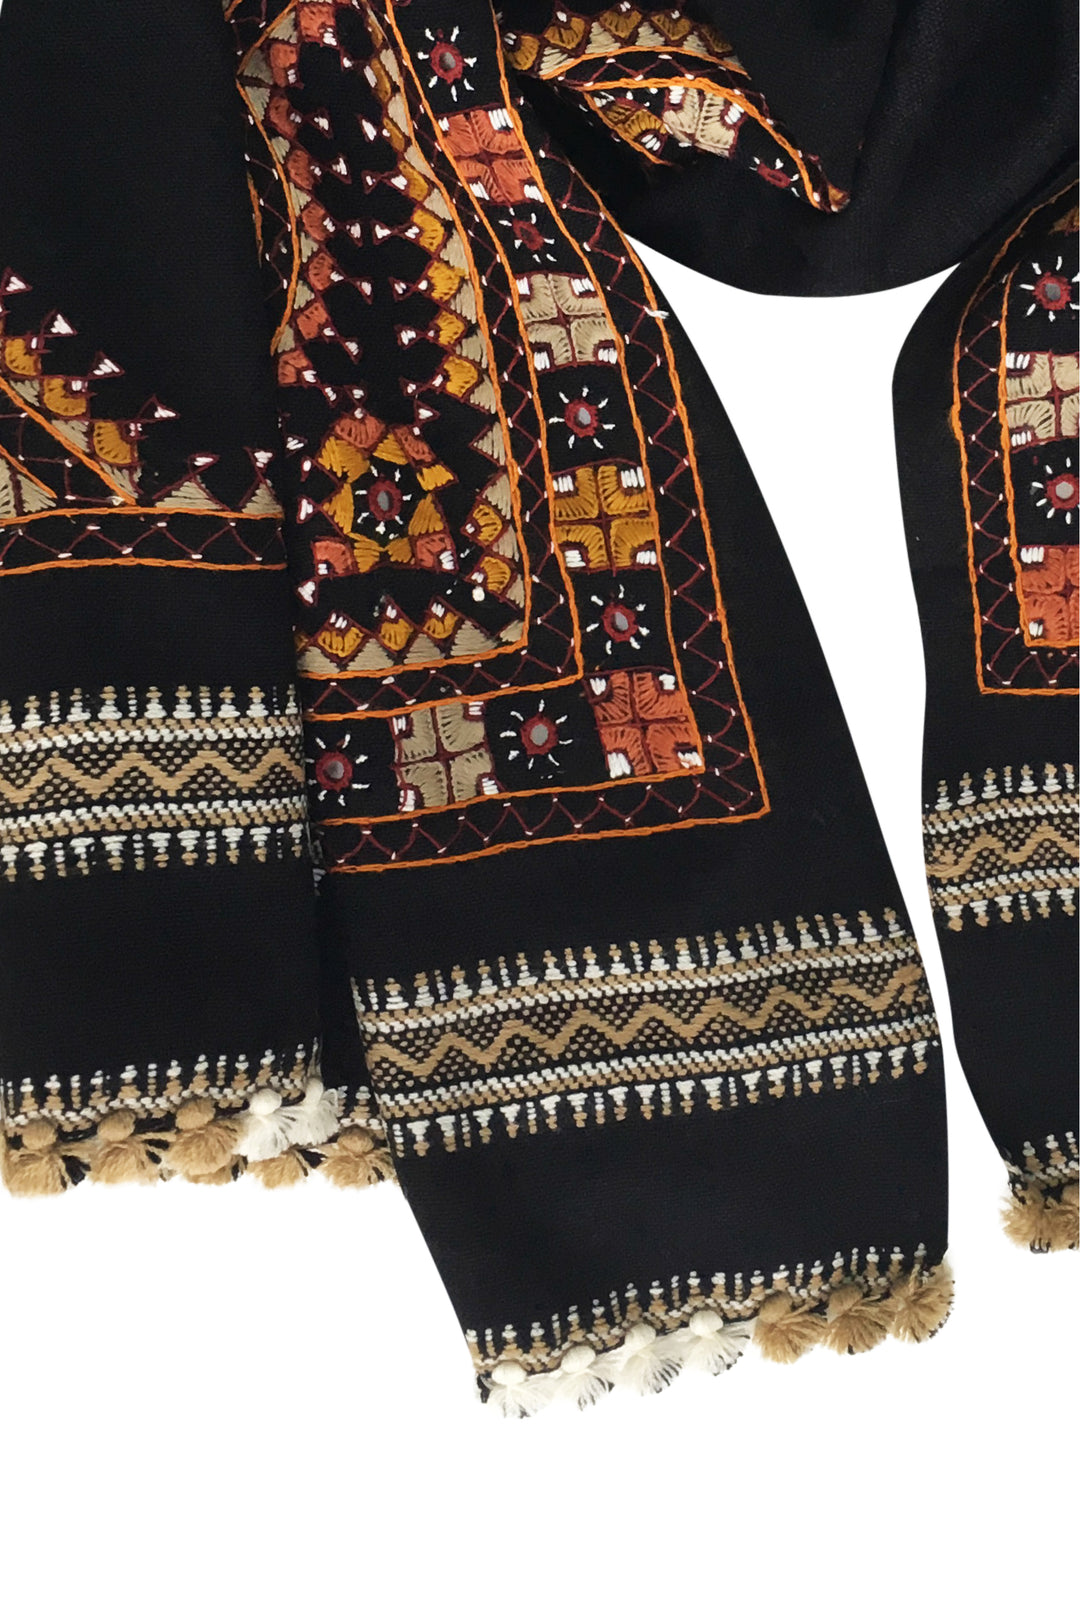 kutch embroidered oversized shawl masala